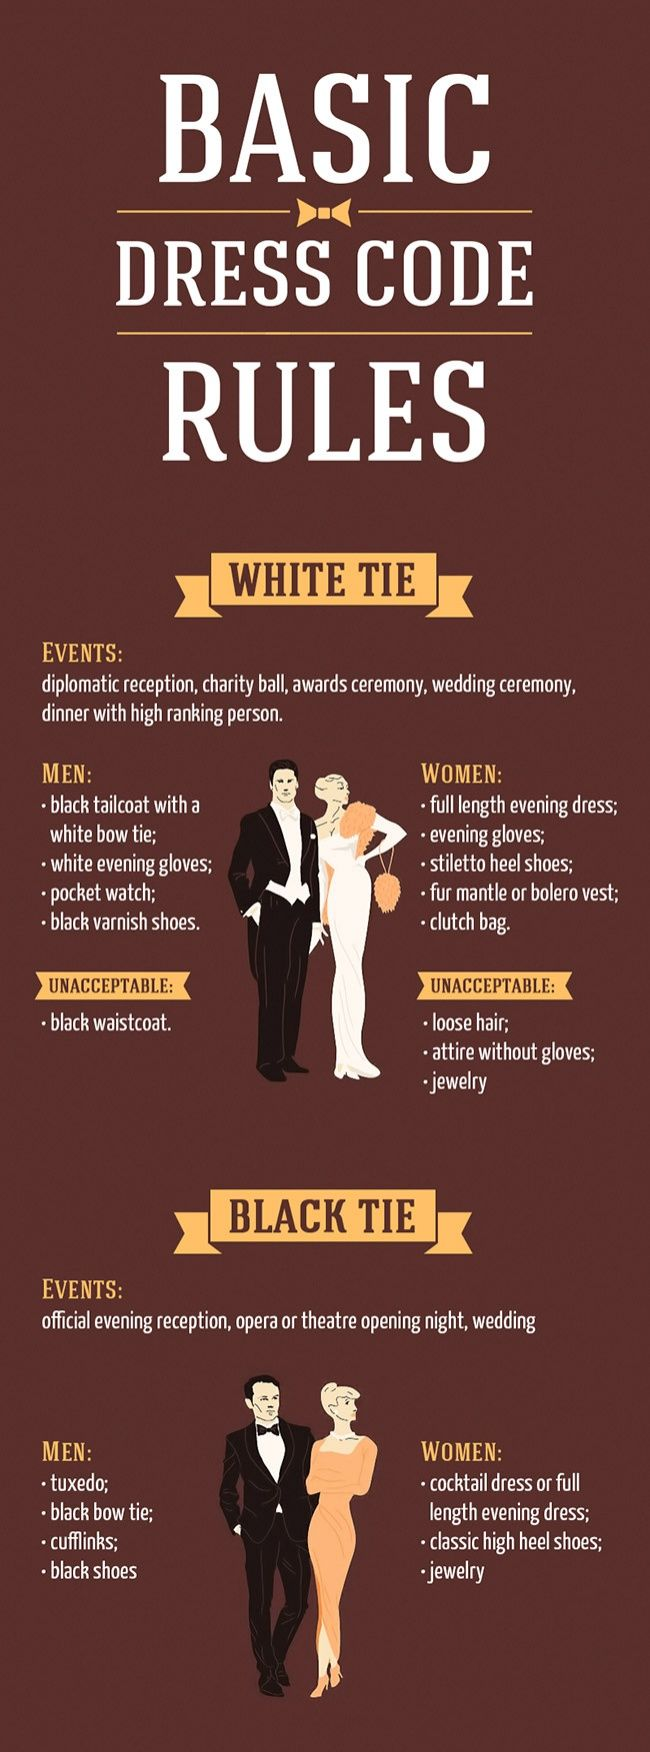 The 25 best ideas about dress code guide on pinterest for Formal dress code wedding